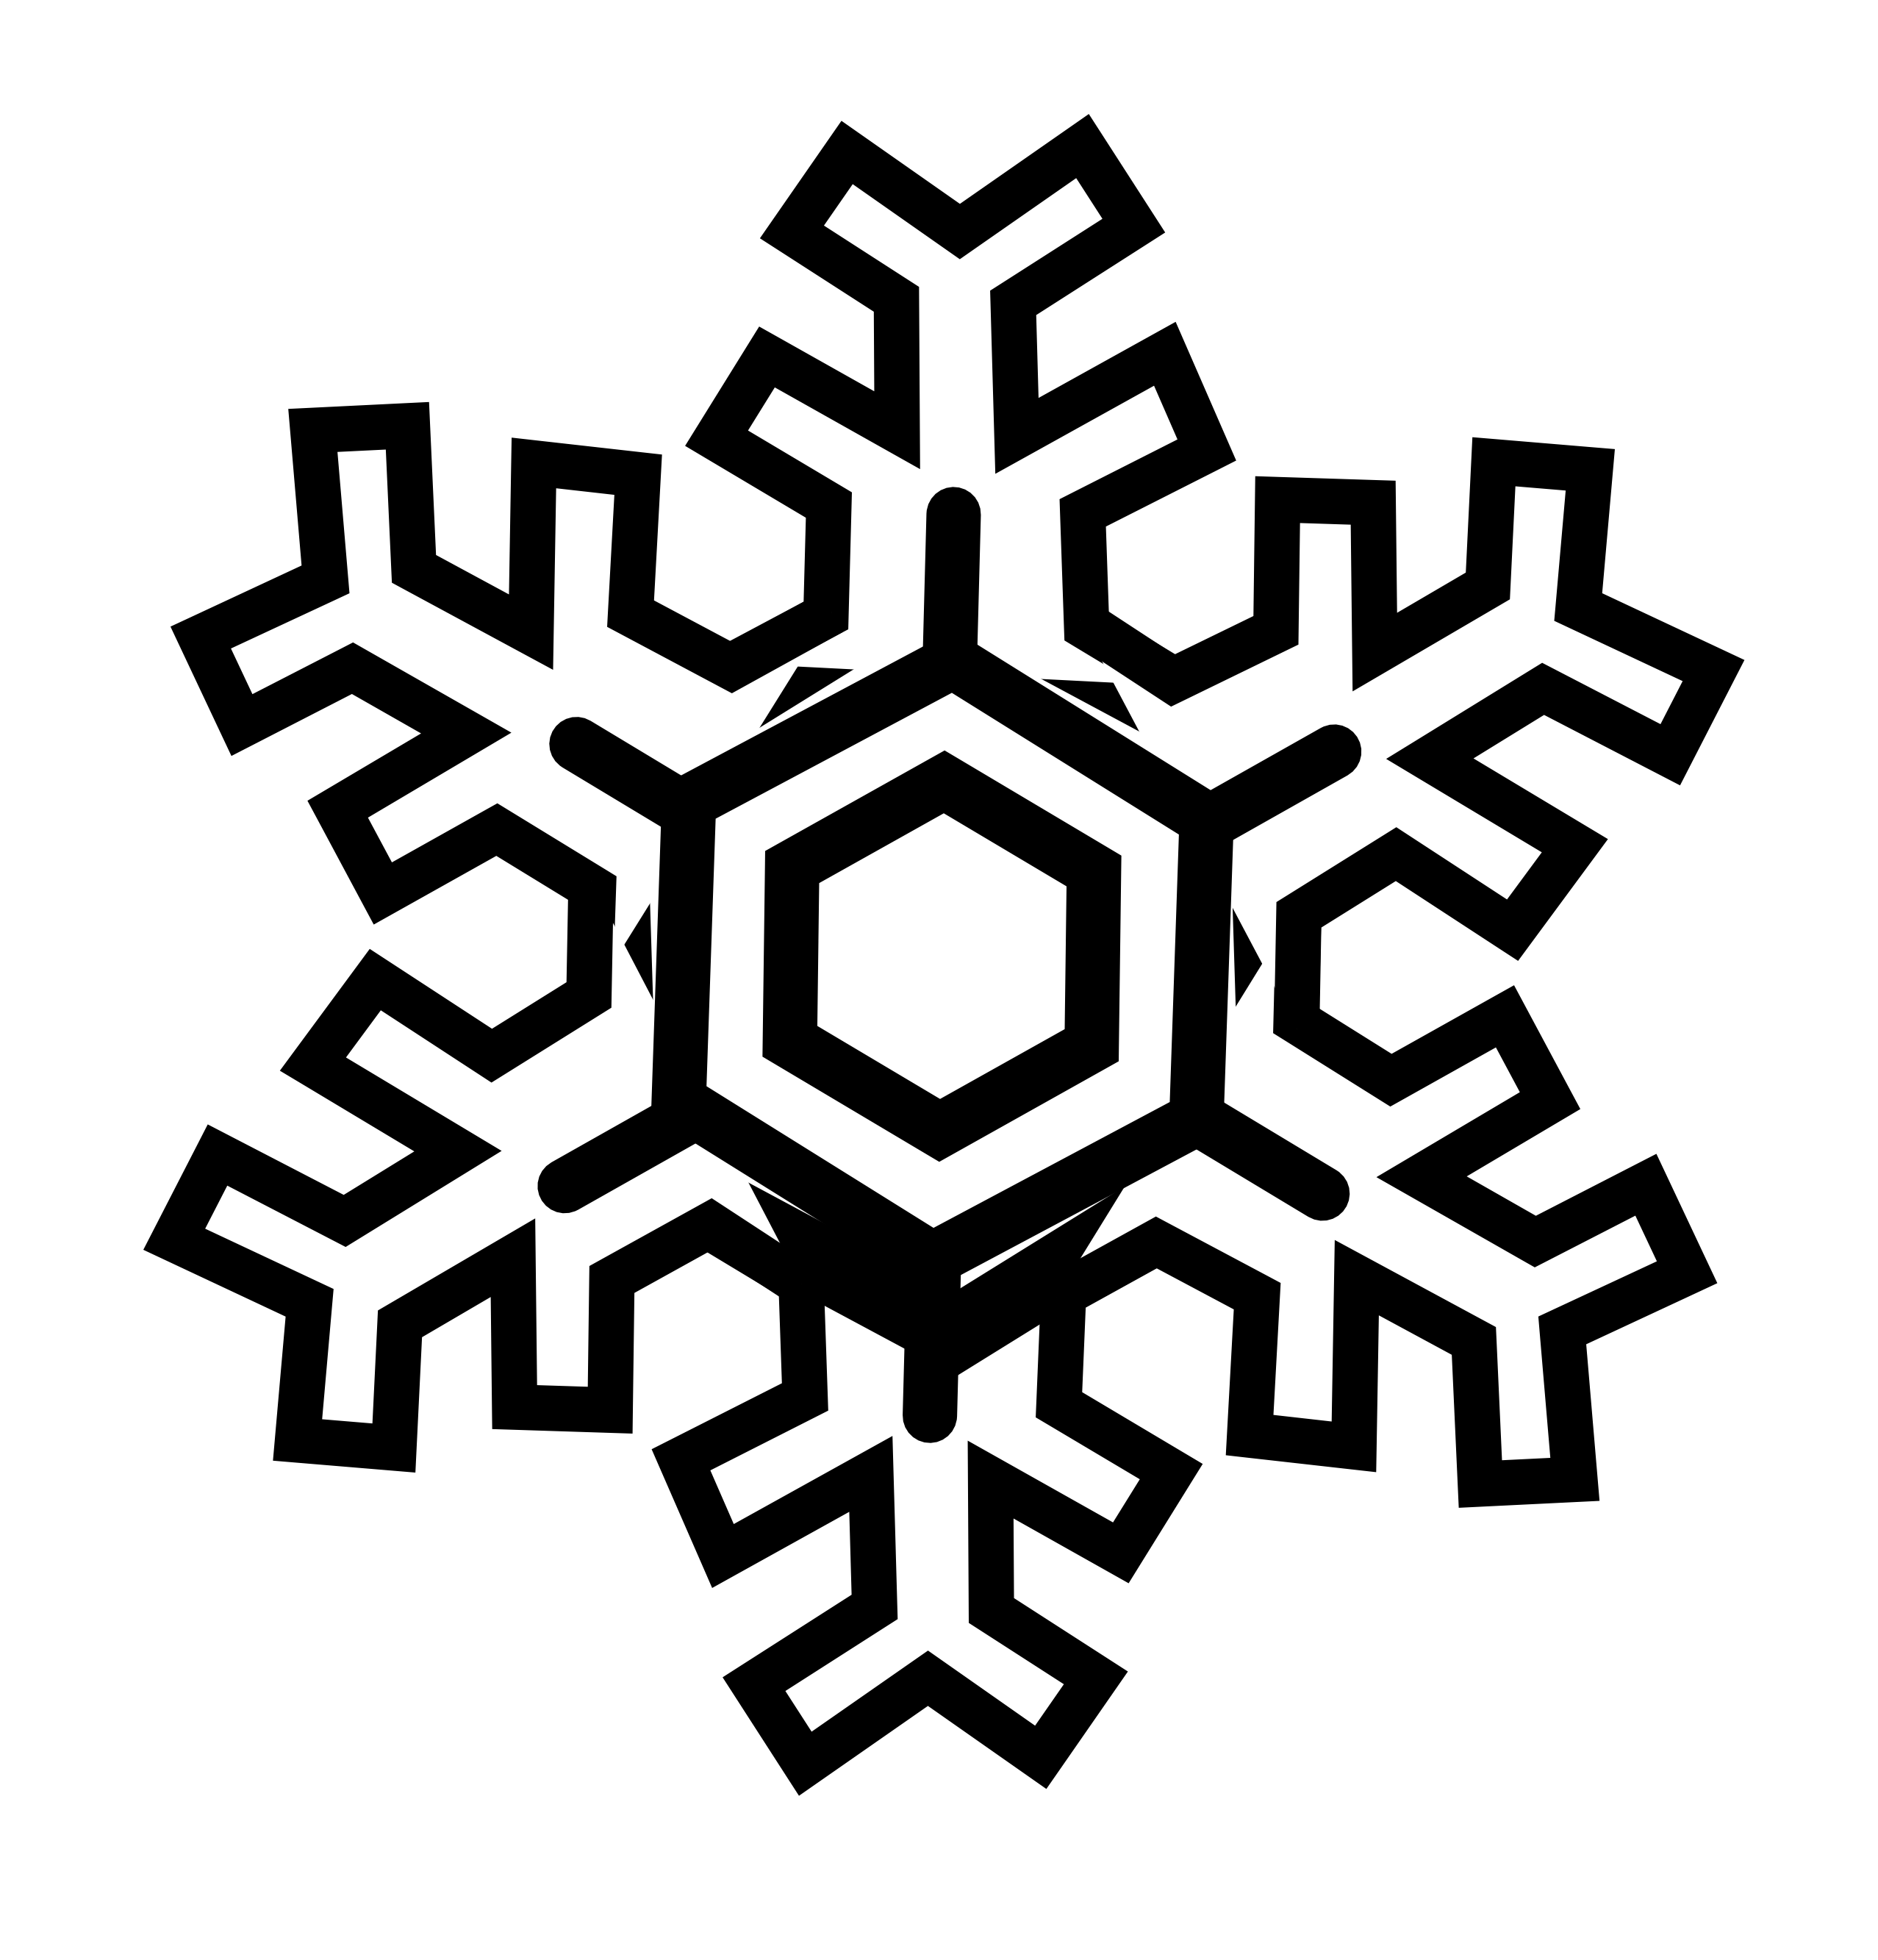 2555x2666 Snowflake Clipart Black And White Snowflake Stylized Black White